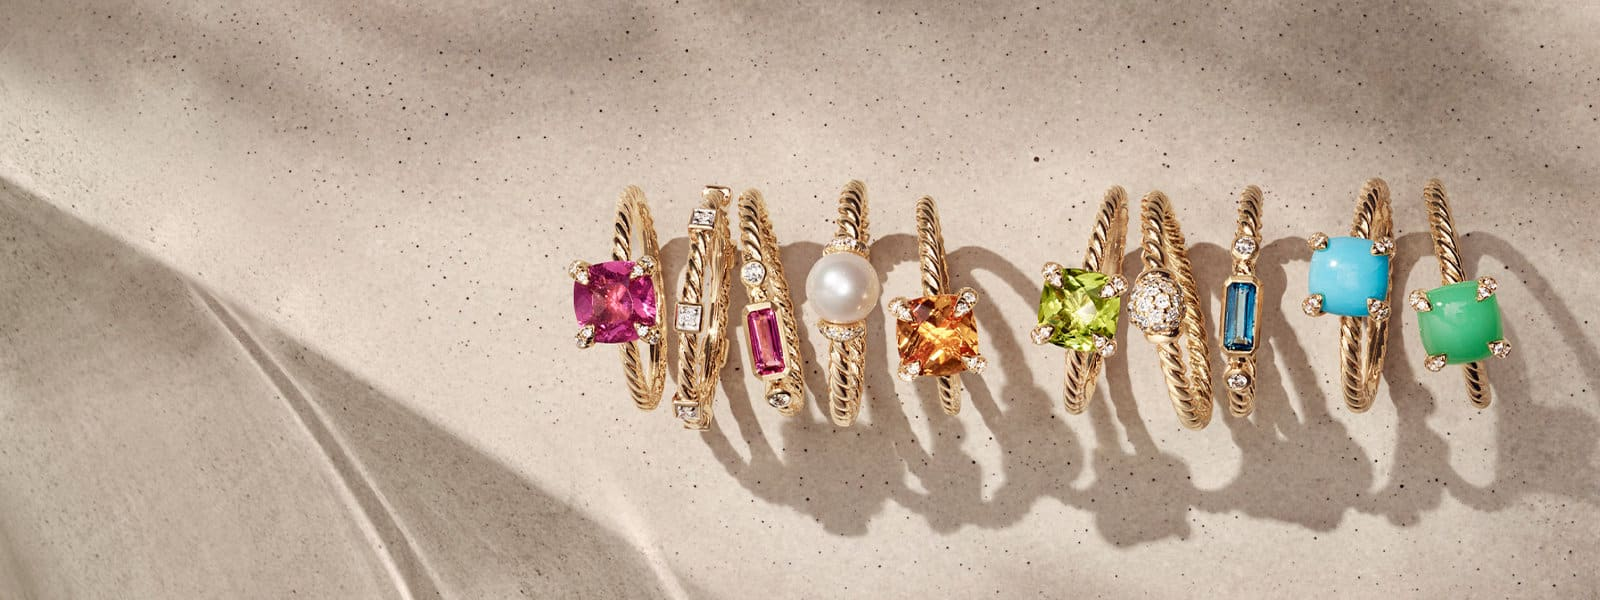 A chromatic horizontal stack of David Yurman Châtelaine®, Cable Collectibles®, Novella and Solari rings in 18K yellow gold with white diamonds and a variety of colored gemstones, standing on top of and casting long shadows on a sandy textured stone.